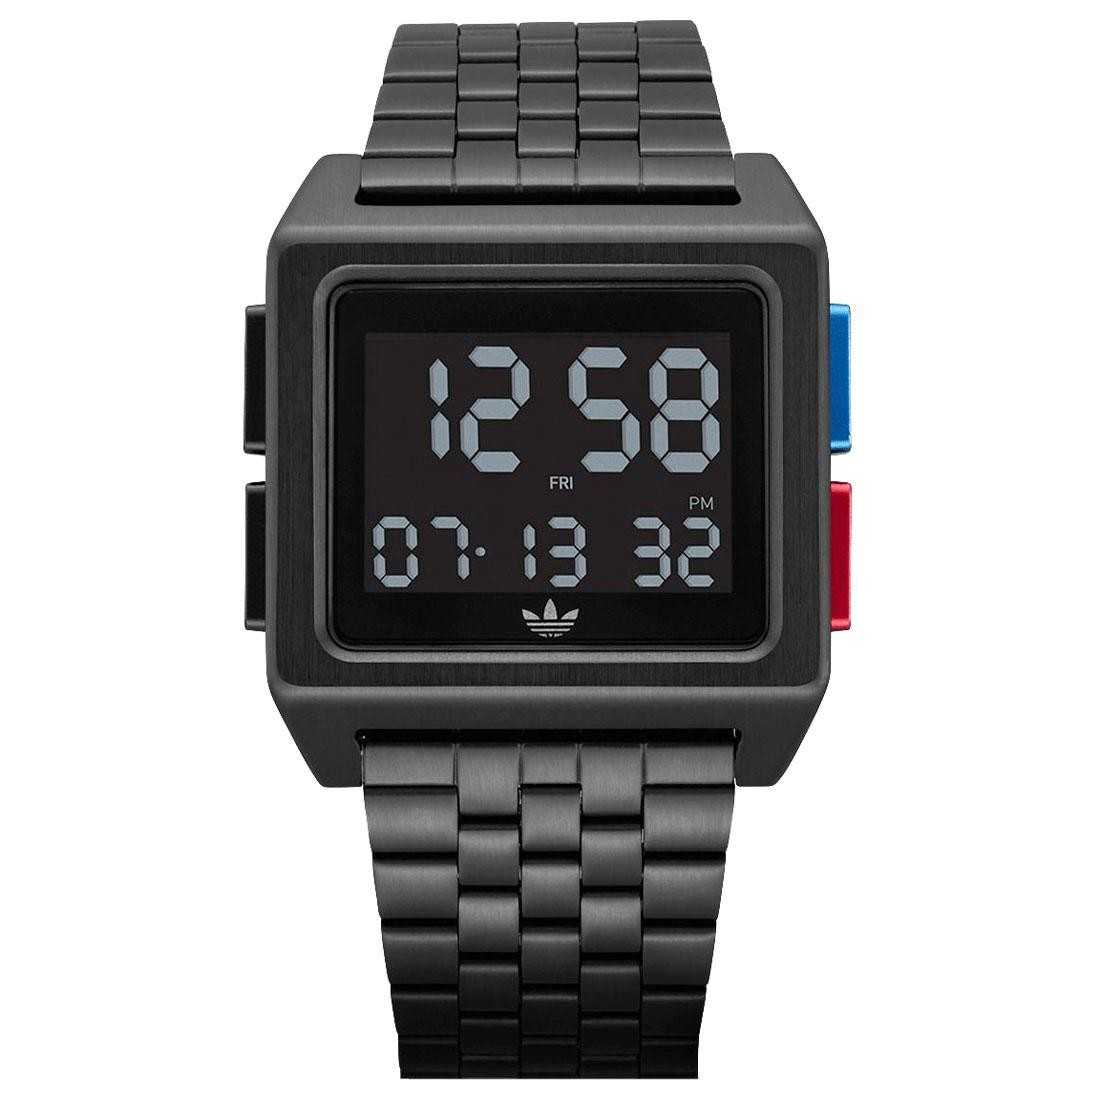 Adidas Archive M1 Watch (black / all black / blue / red)